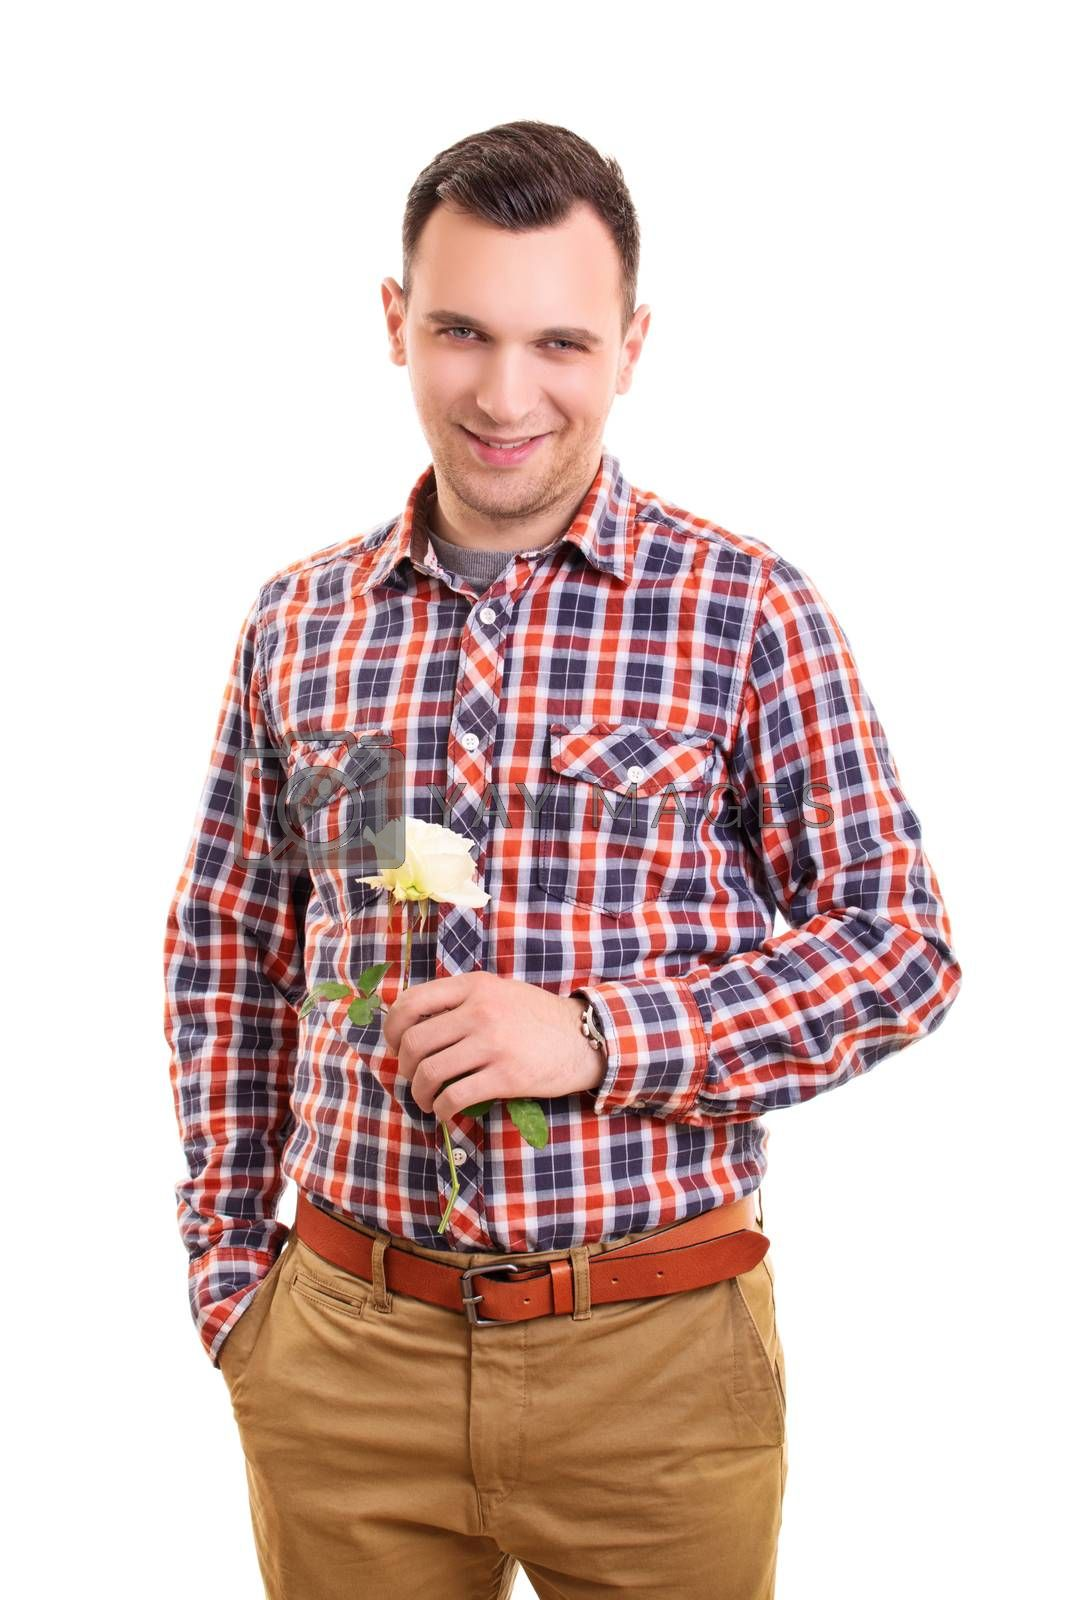 Handsome stylish young man holding a white rose flower, isolated on white background. Valentines day, date, romance concept. Romantic gift. Romantic man. Boyfriend concept.